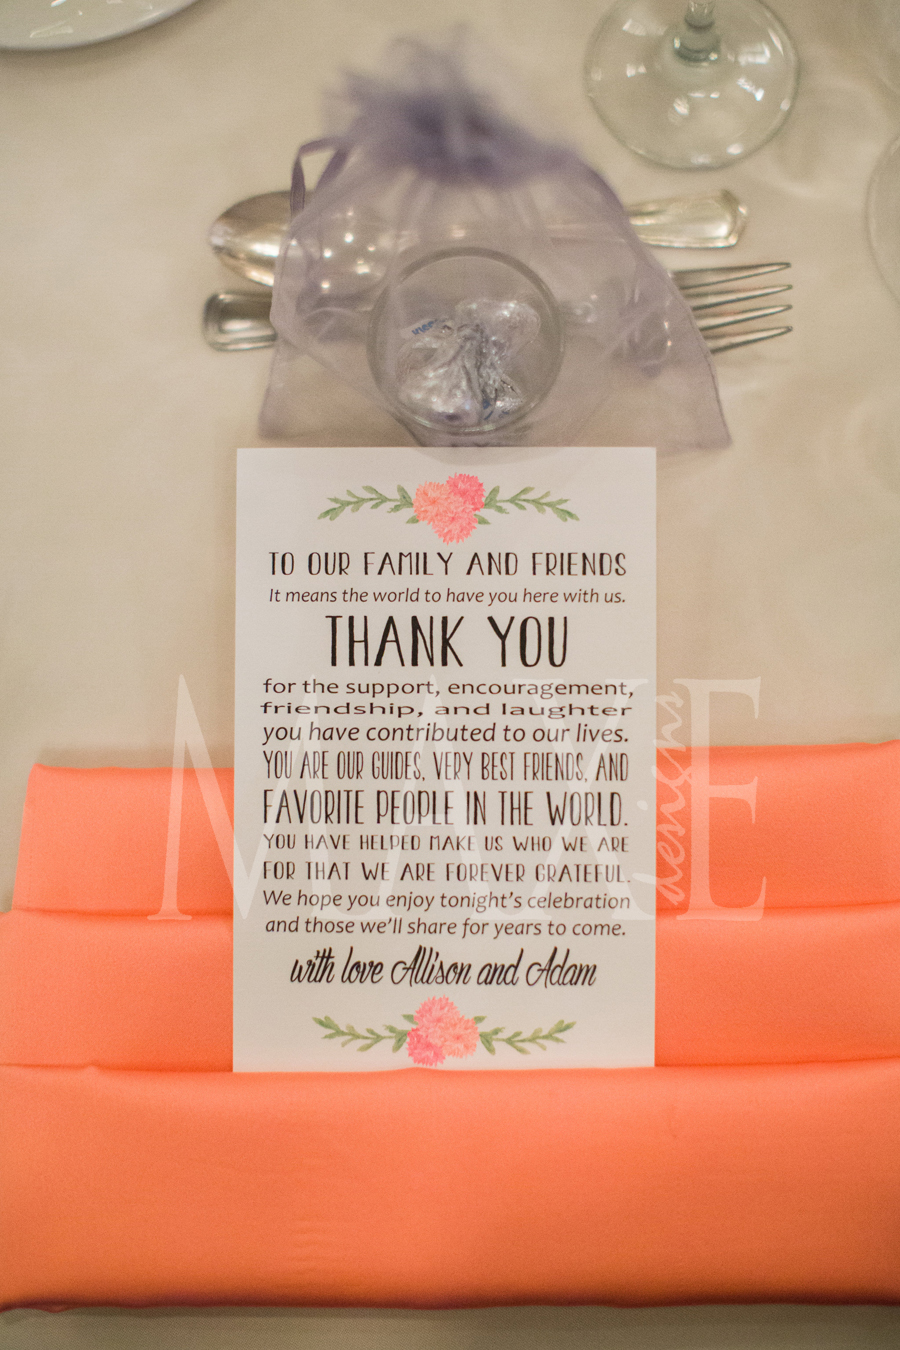 And Allison & Adam's style continues...so many ideas and so many ways to carry your style throughout your big day!